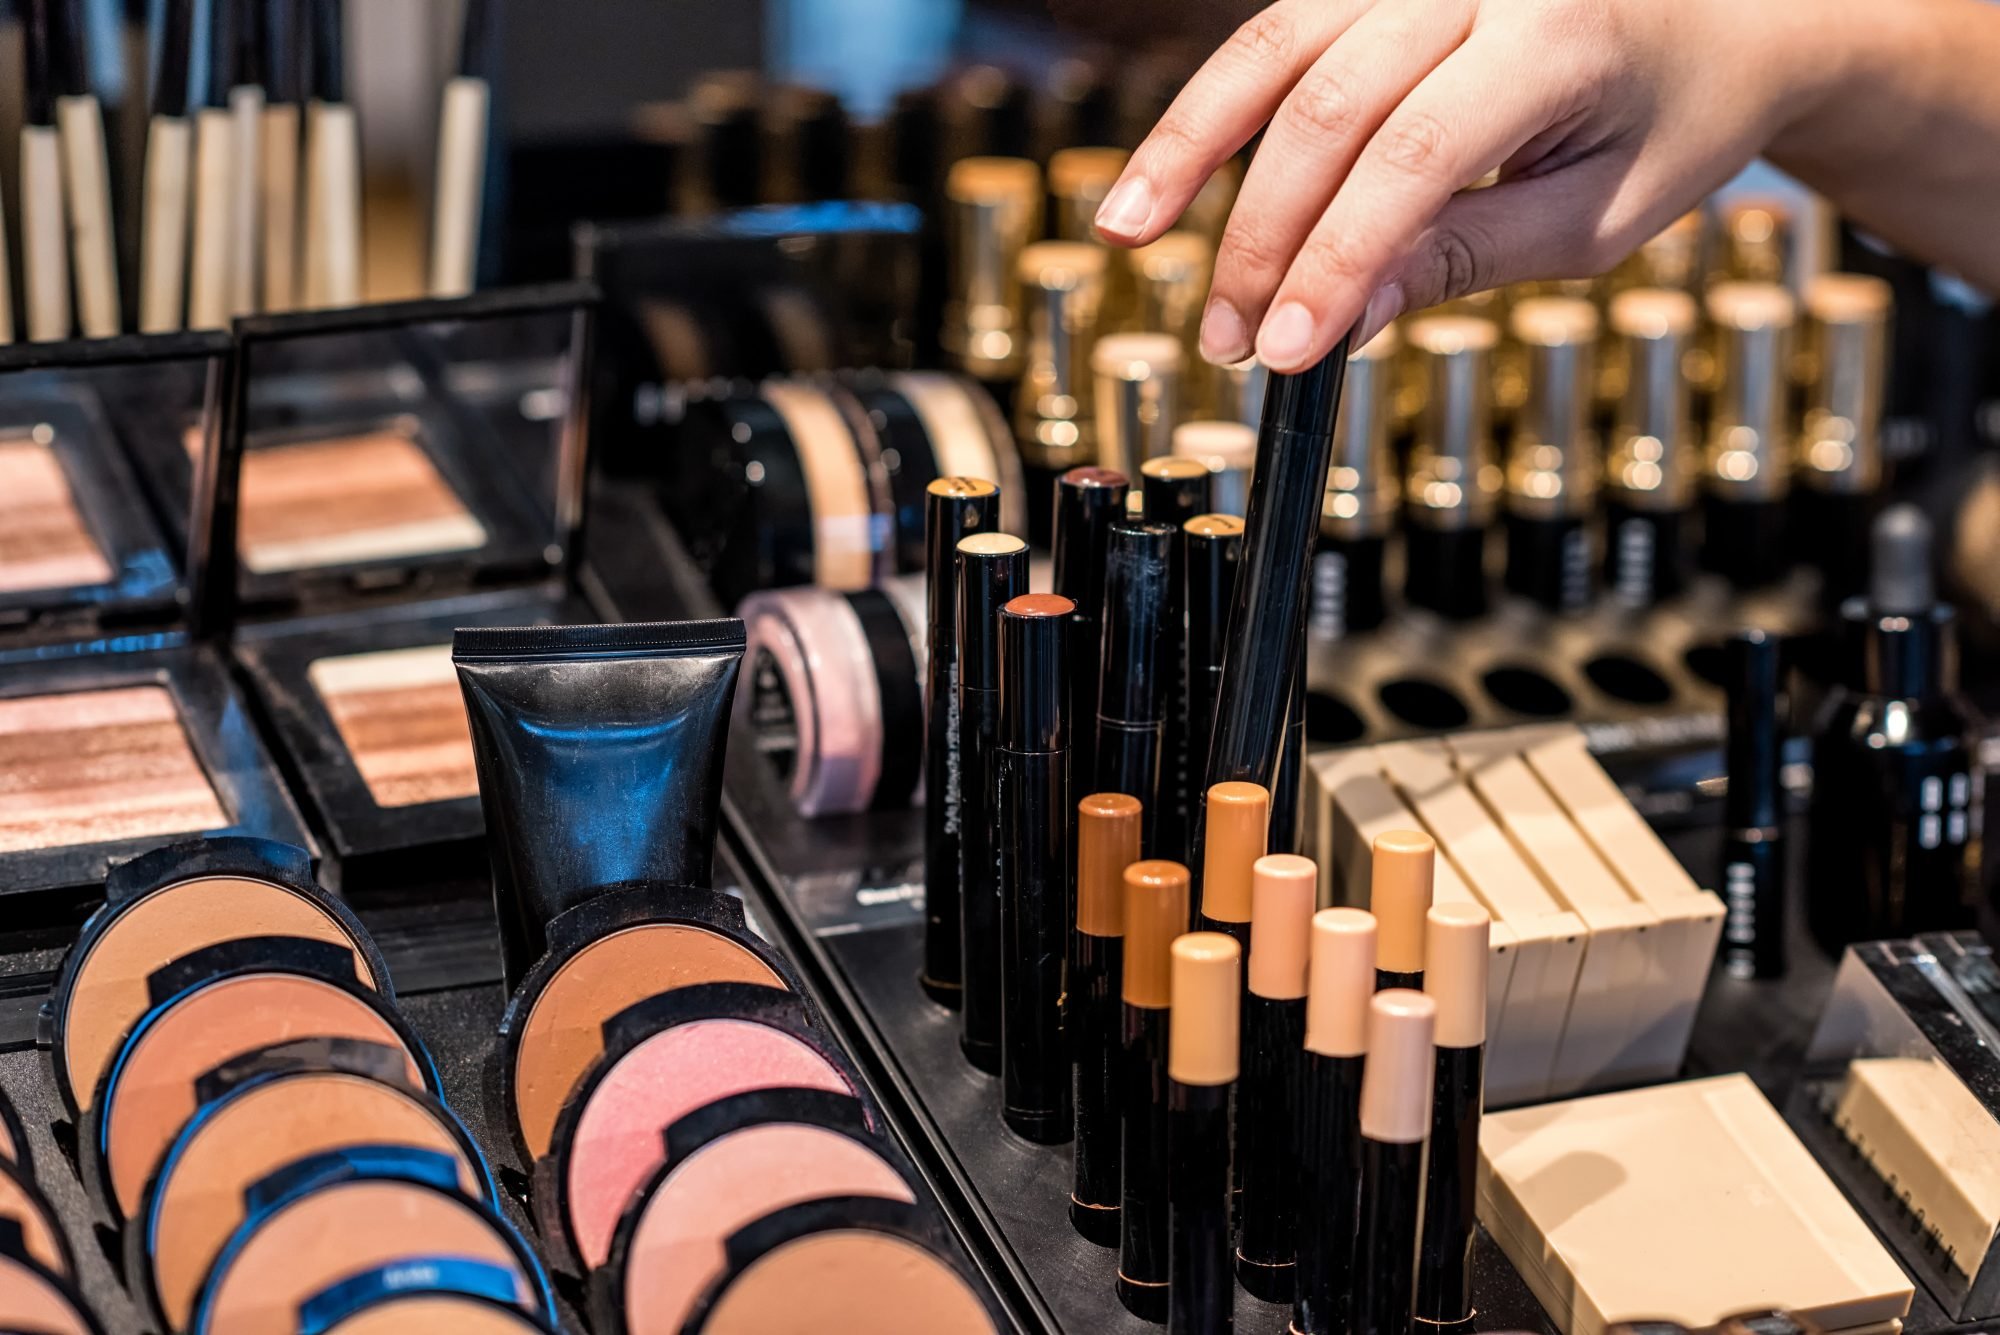 This Is How One Reddit User Overcame Her Makeup Addiction